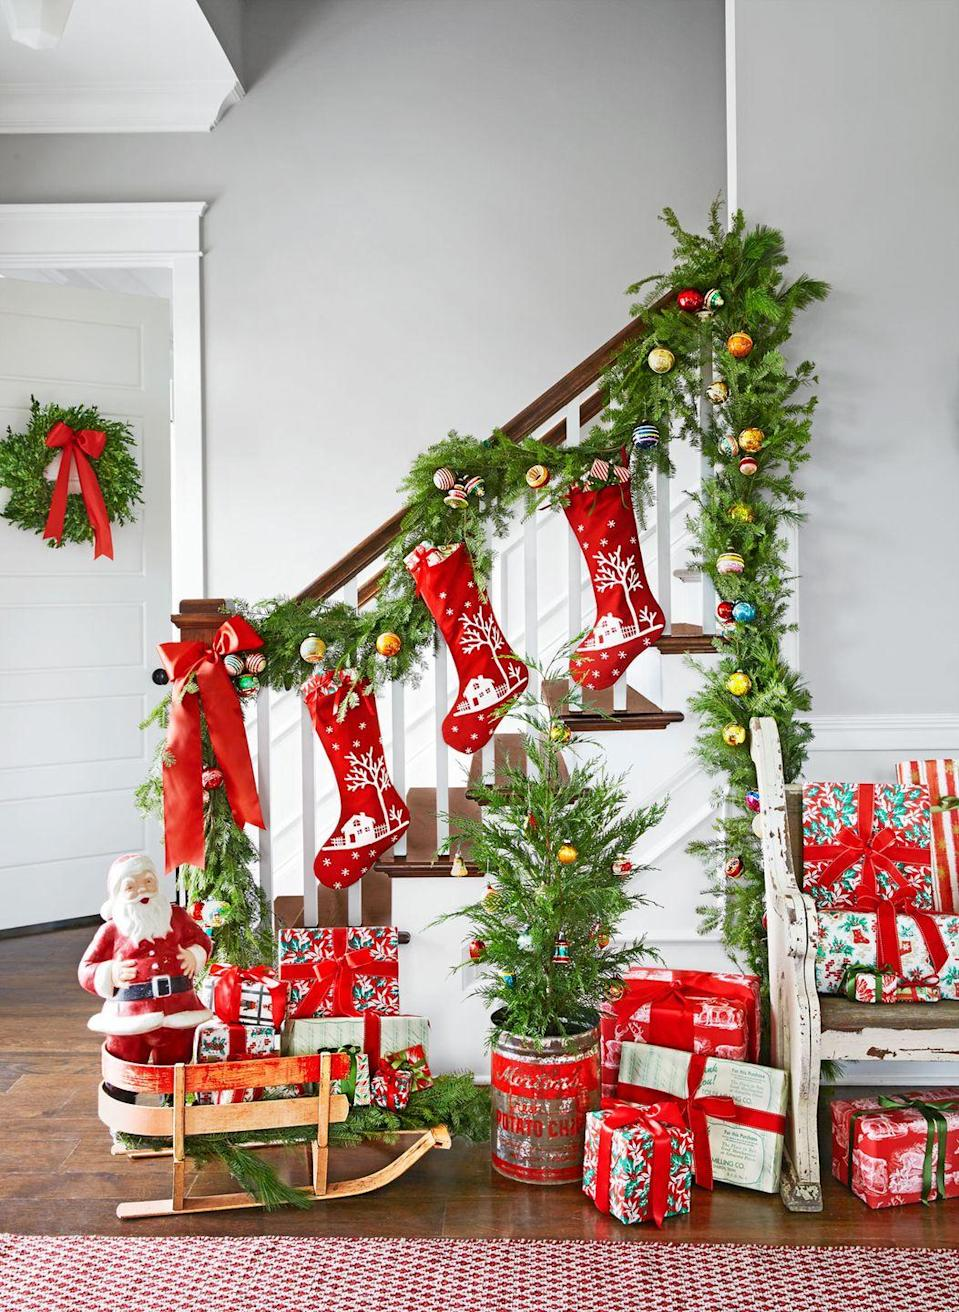 """<p>Stockings, colorful ornaments, and plenty of wrapped presents liven up the entryway of this <a href=""""https://www.countryliving.com/home-design/house-tours/g3856/christmas-tennessee-house-tour/"""" rel=""""nofollow noopener"""" target=""""_blank"""" data-ylk=""""slk:Tennessee home"""" class=""""link rapid-noclick-resp"""">Tennessee home</a>.</p><p><strong><a class=""""link rapid-noclick-resp"""" href=""""https://www.amazon.com/Yoland-Plating-Multicolor-Christmas-Ornaments/dp/B014IOKTEK?tag=syn-yahoo-20&ascsubtag=%5Bartid%7C10050.g.1247%5Bsrc%7Cyahoo-us"""" rel=""""nofollow noopener"""" target=""""_blank"""" data-ylk=""""slk:SHOP ORNAMENTS"""">SHOP ORNAMENTS</a></strong></p>"""